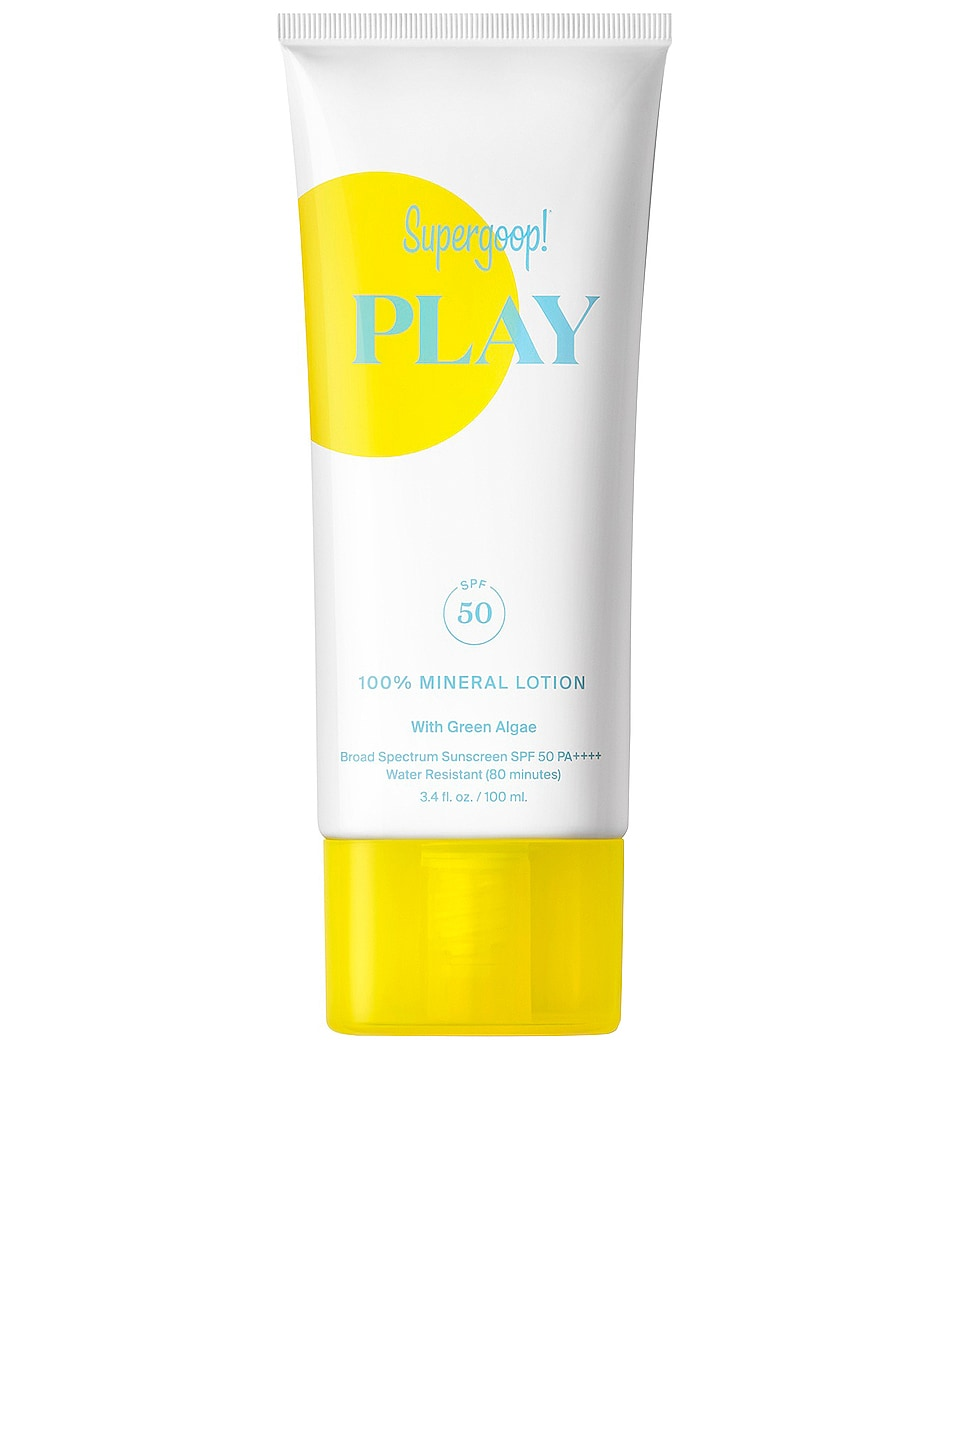 Supergoop! Play 100% Mineral Lotion SPF 50